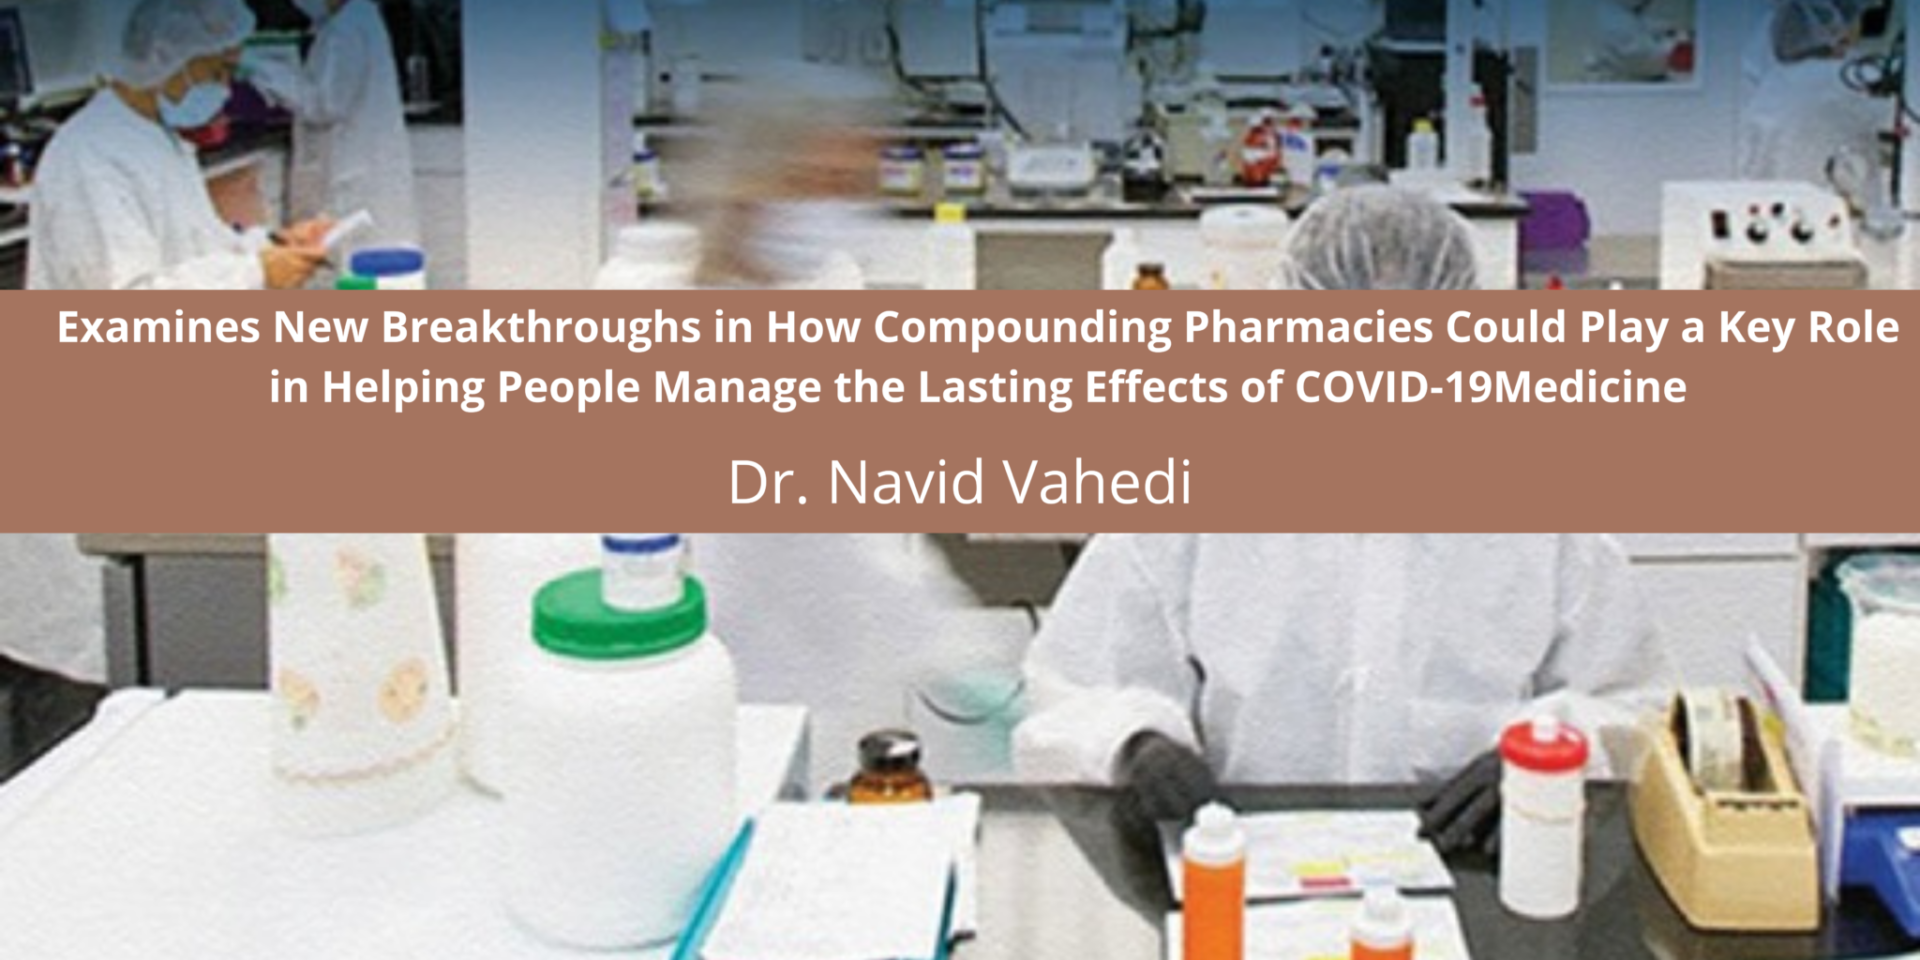 Dr. Navid Vahedi of Fusion IV Inc. Pharmaceuticals Discusses How Compounding Pharmacies Could Play a Key Role in Helping People Manage the Lasting Effects of COVID-19